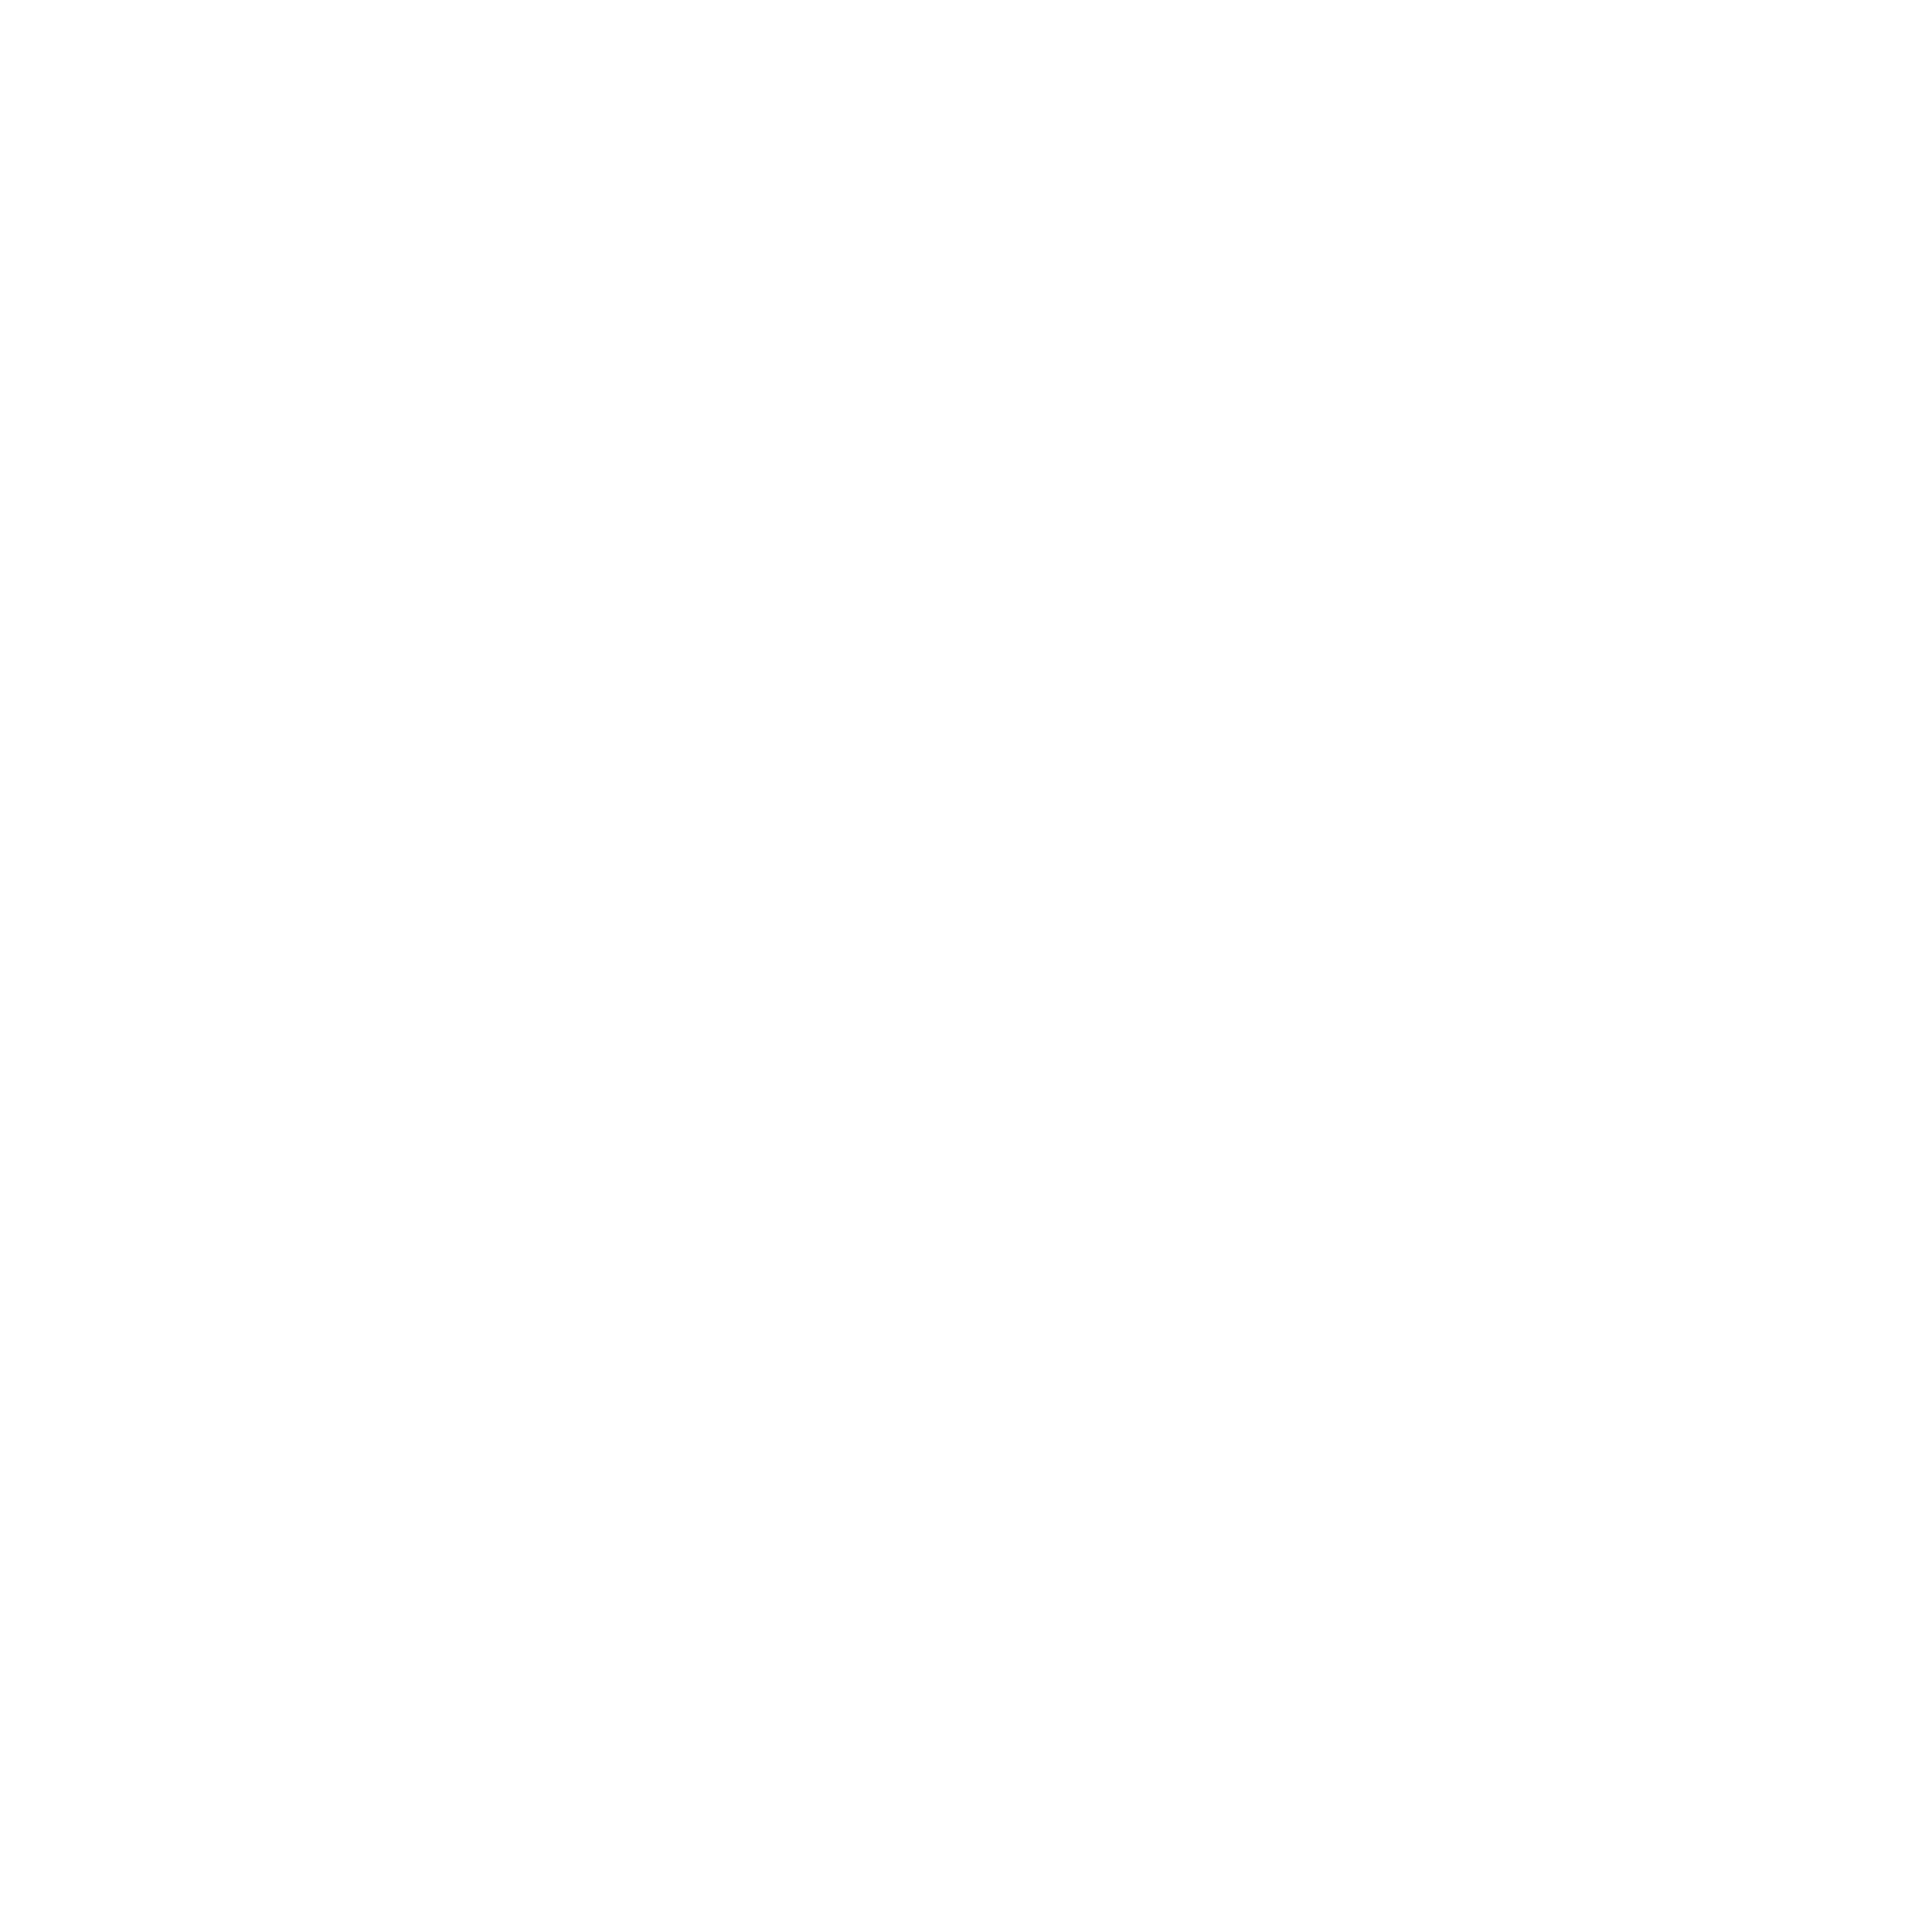 Supervised swimming icon